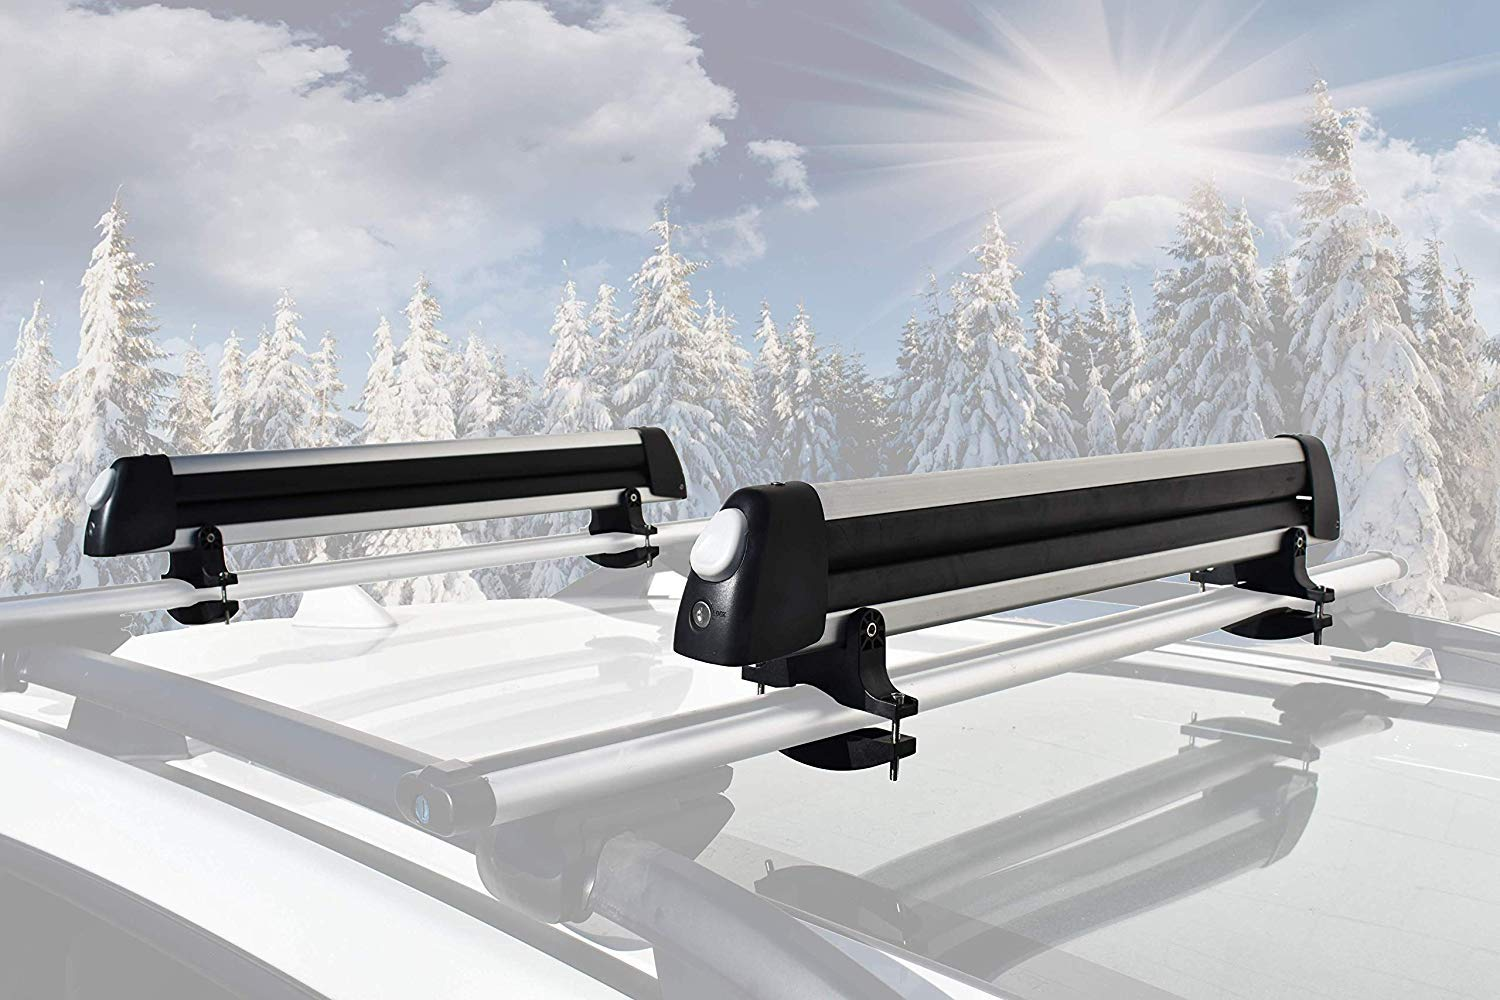 Booster goods CBL33 4 Pairs Ski Board// 2 Snowboards Booster Universal Car Ski Rack Snowboard Rack Roof Rack Ski Car Rack Fits 6 Pairs of Ski Board or 4 Snowboards Ski Roof Carrier Fit Most Vehicles